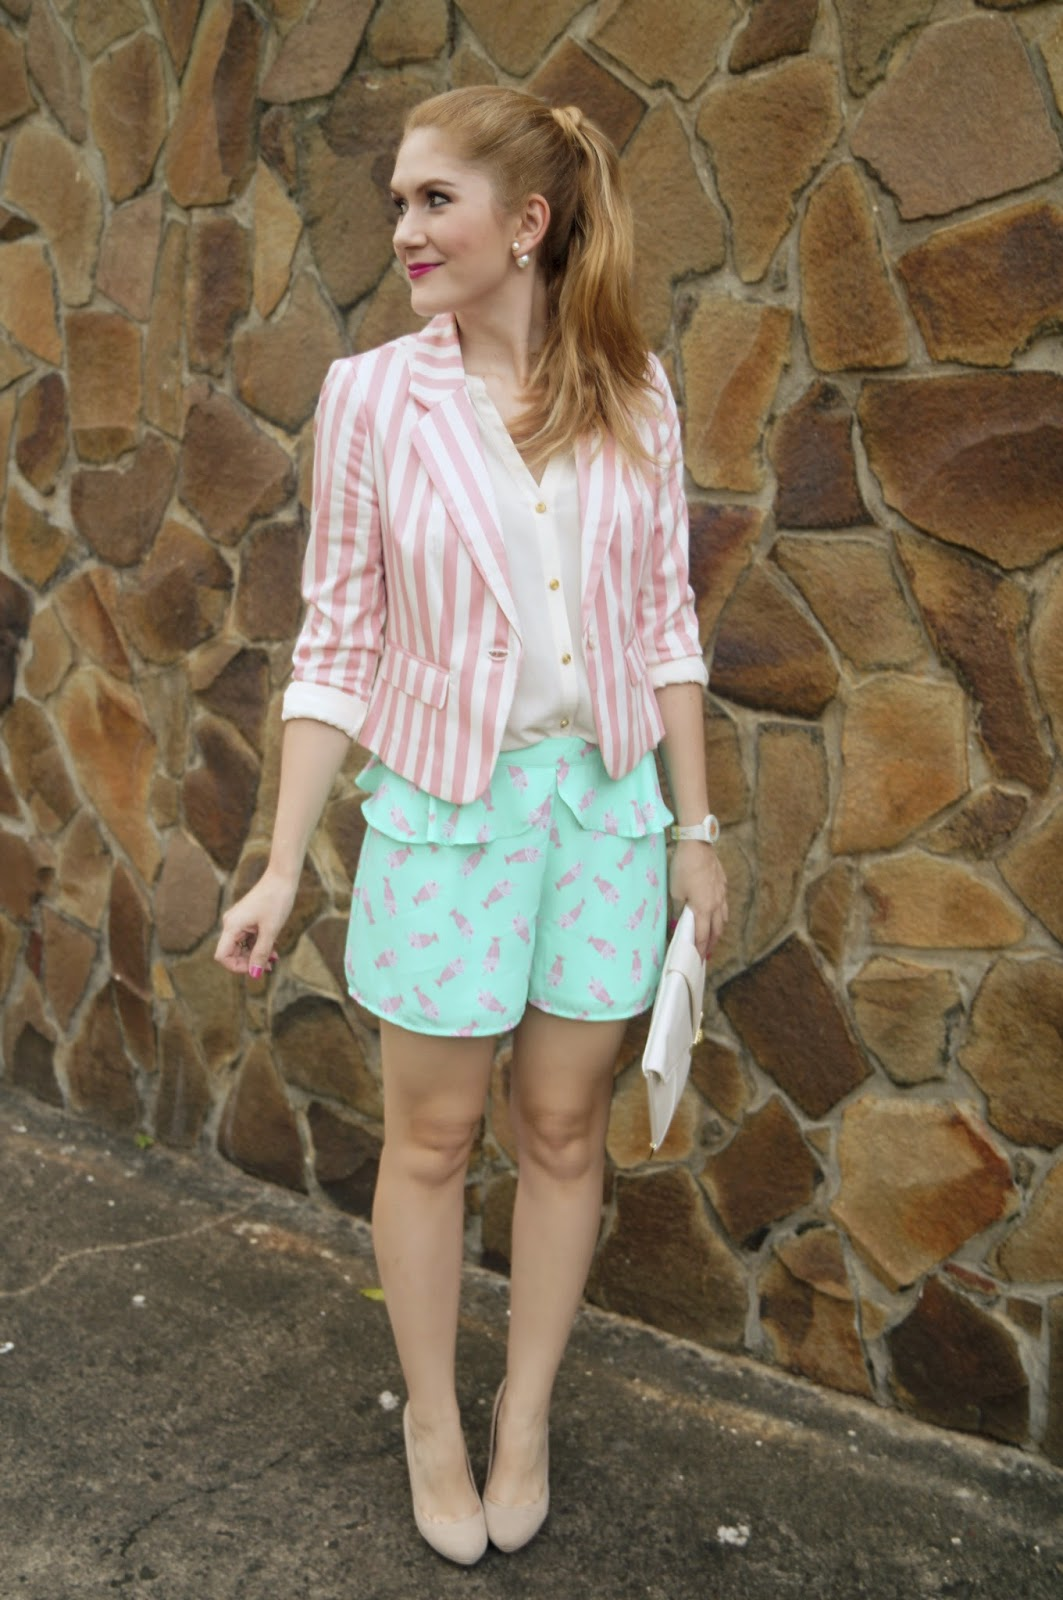 Cute Spring Outfit in Pastel Colors